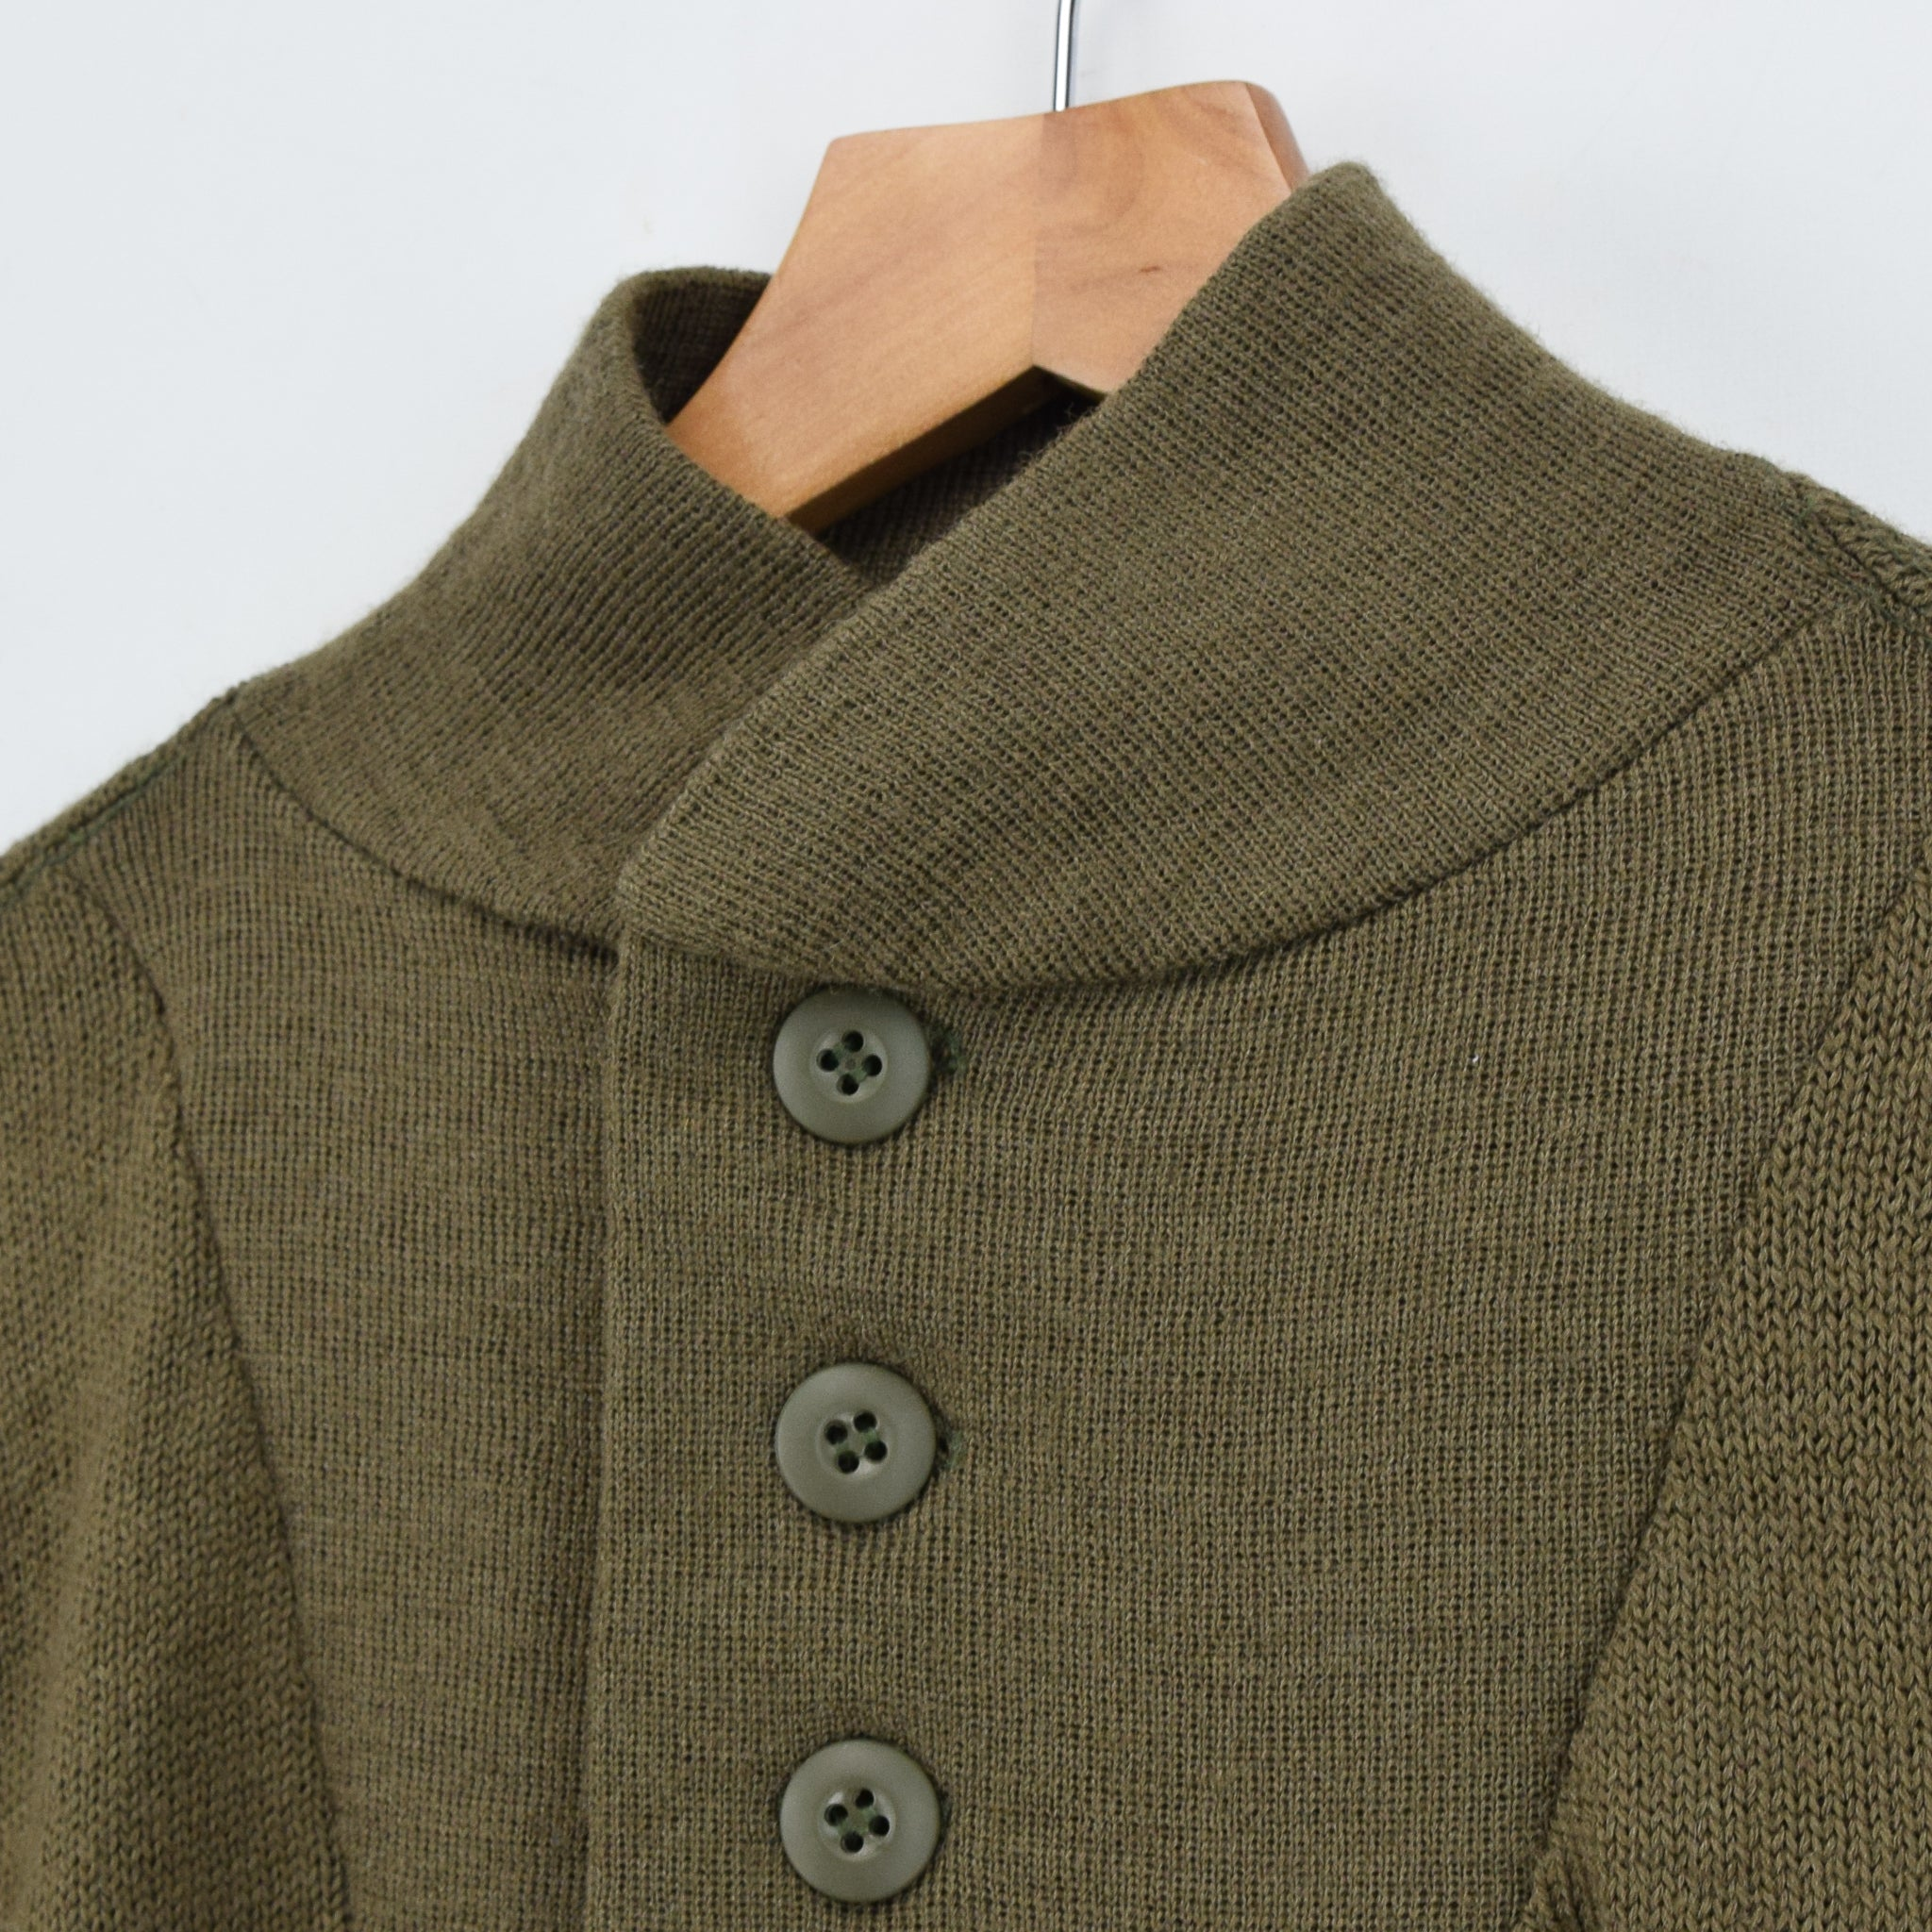 Vintage 60s US Army Military Sweater Olive Wool USA Made Button Pullover M collar front fastening buttons